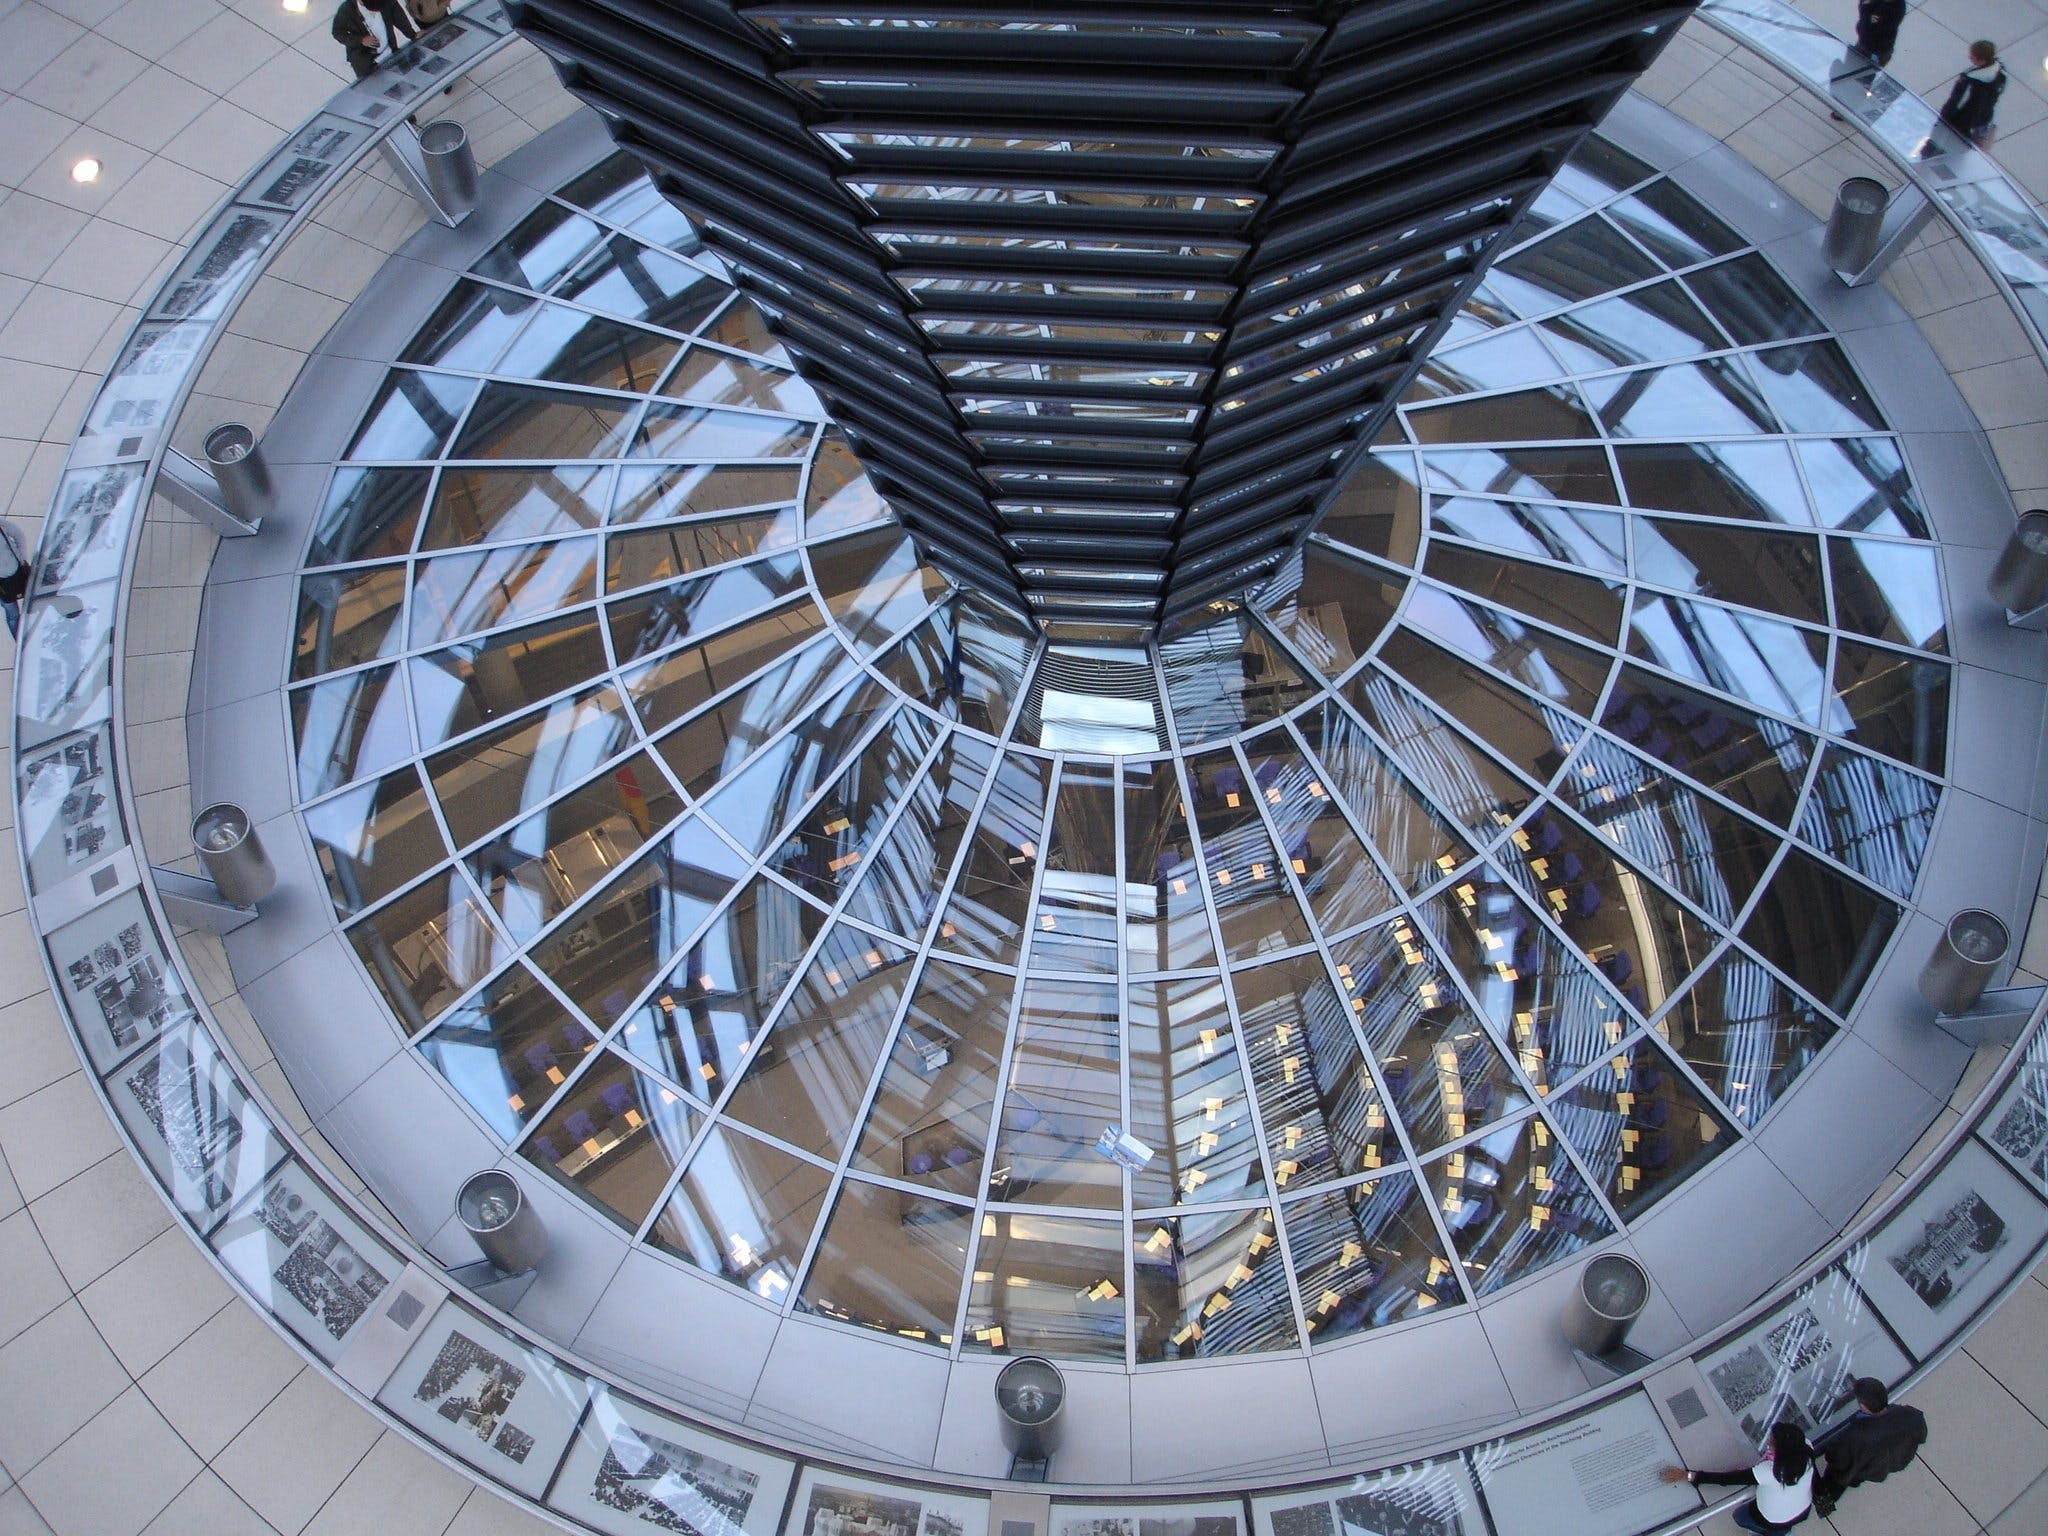 Clear Glass Dome Near People Standing on Aerial View Photography